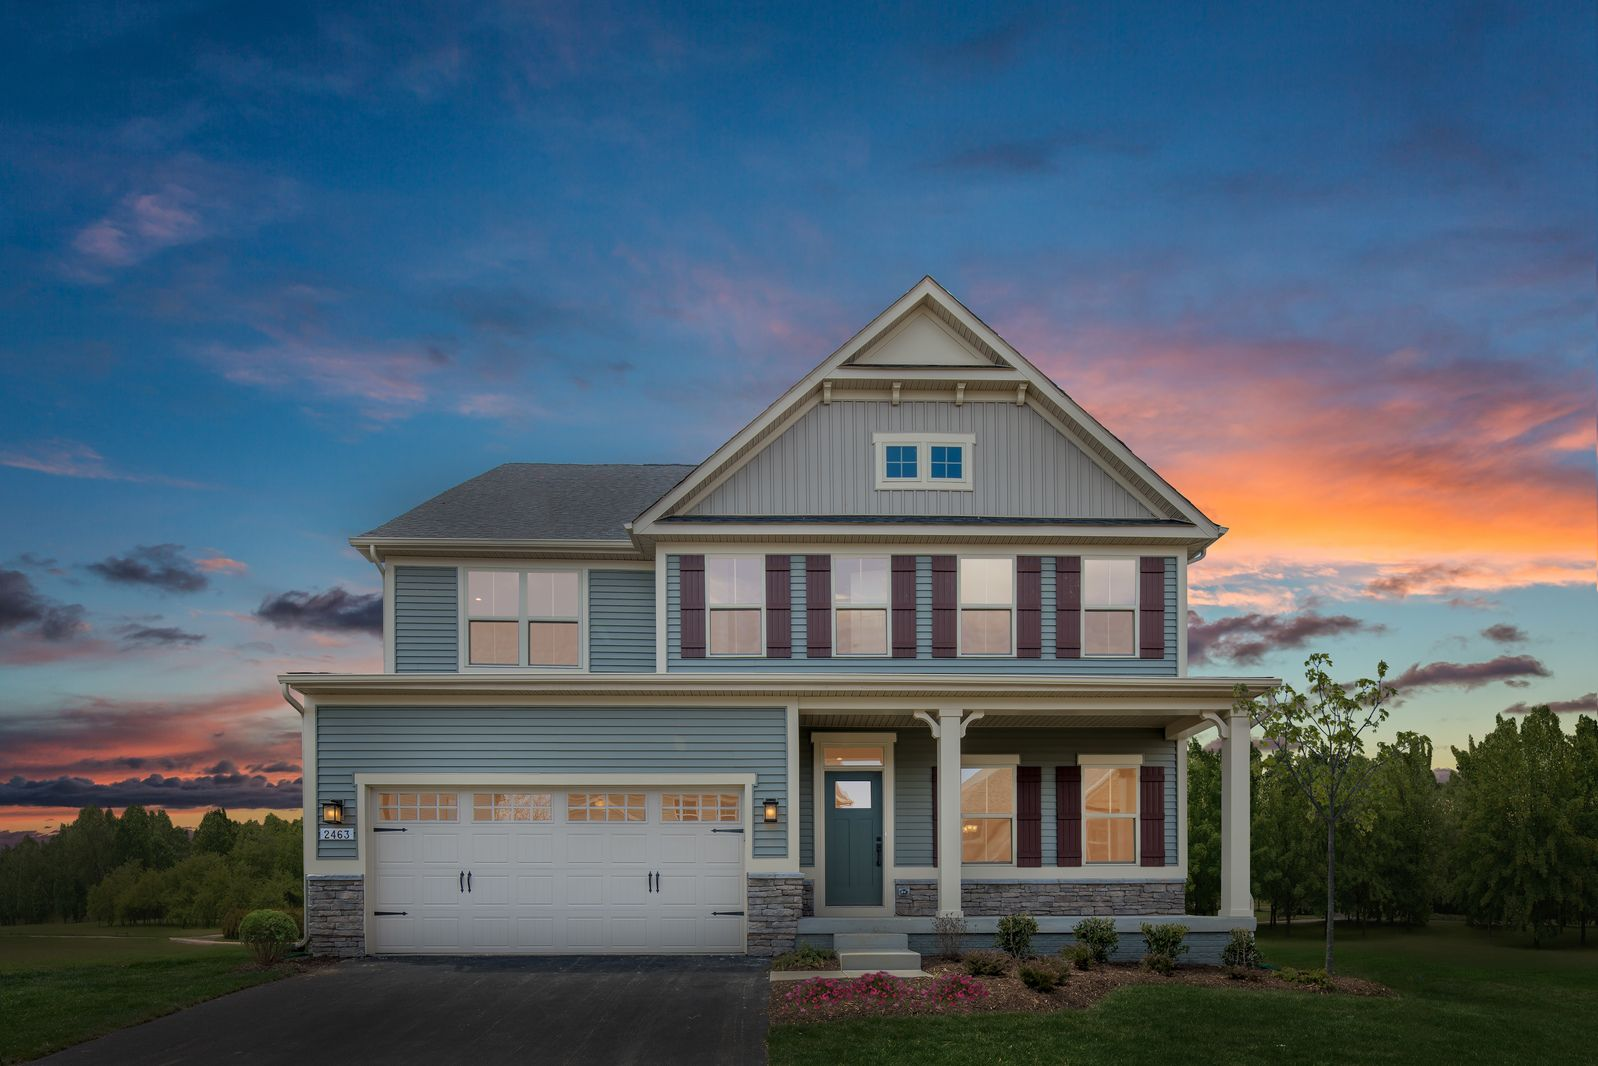 Welcome to Woodfield:The largest new single-family homes near shopping, dining and Rt. 422, in the award-winning Boyertown School District in Montgomery County.Schedule your appointmenttoday!